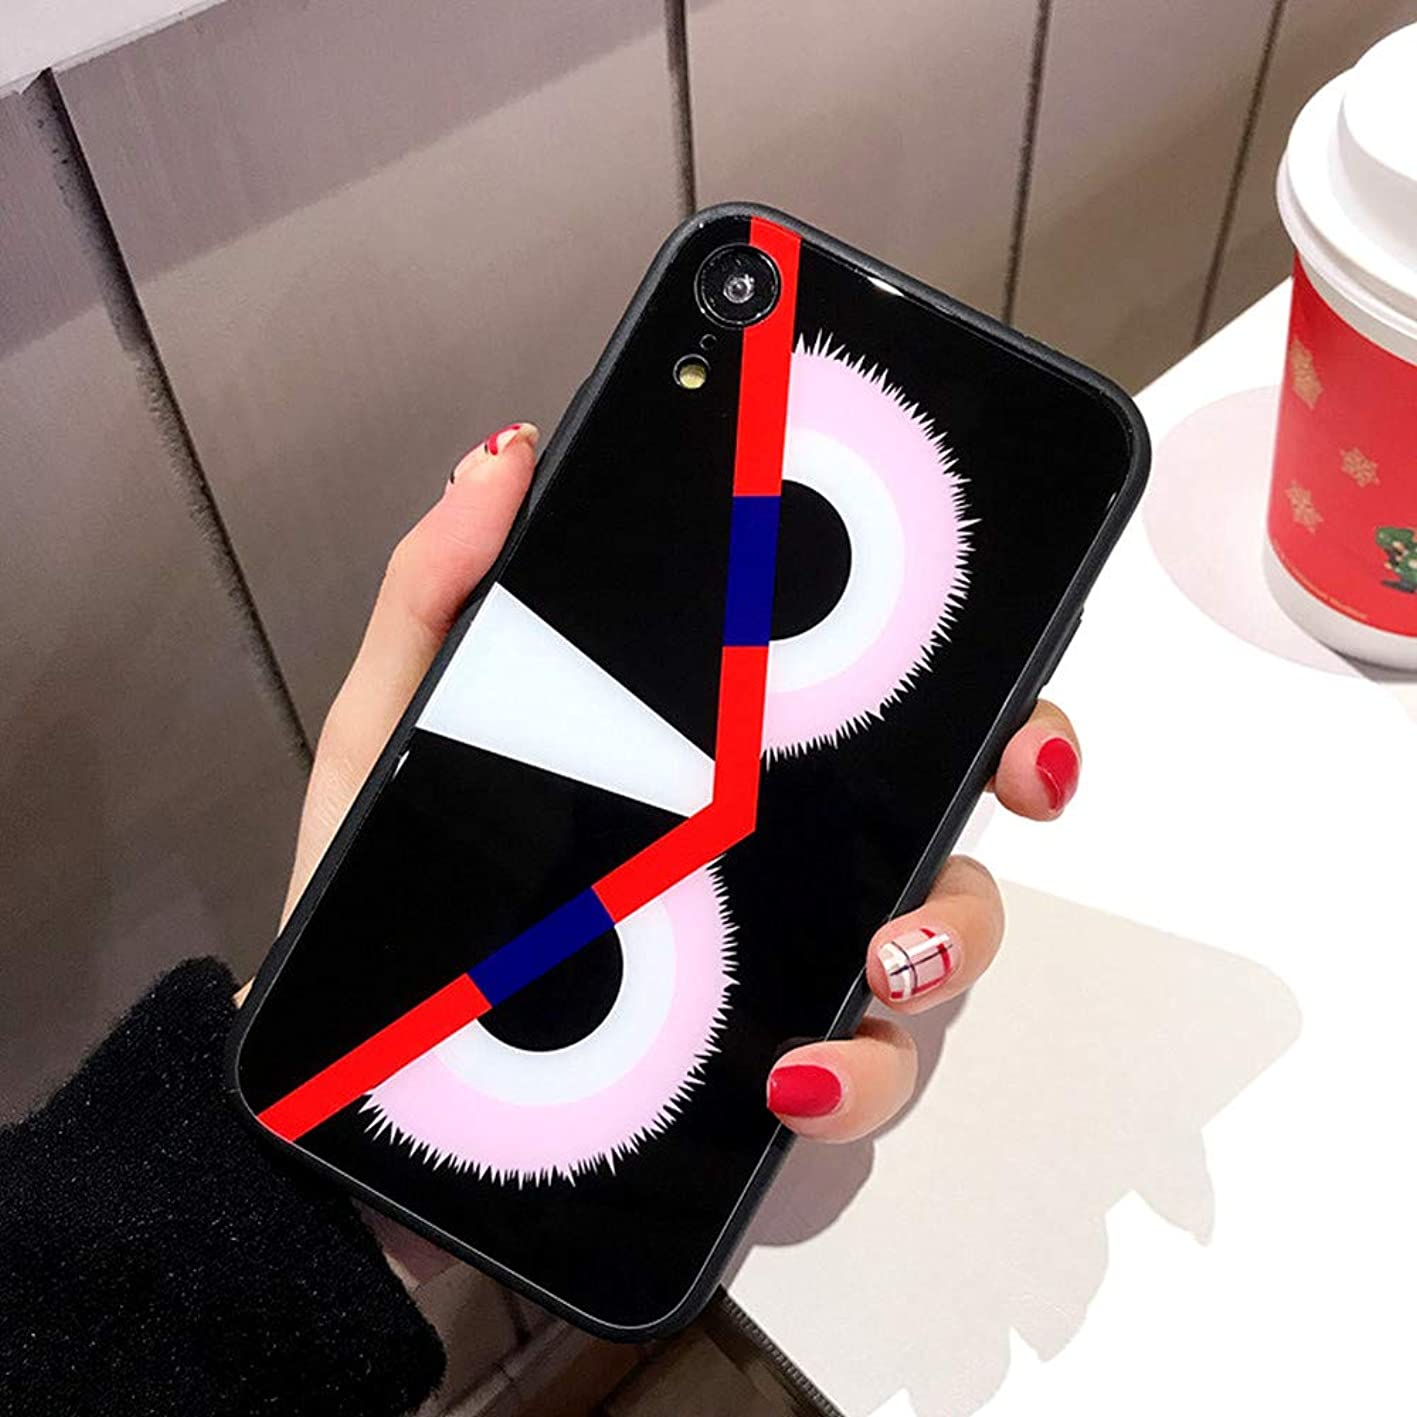 Tempered Glass iPhone-Xr Case,Mirror Glossy Anti Fingerprint Top Feeling TPU Bumper Frame Protective Case for 6.1 iPhone Xr,Street Fashion iPhone-Case Designer Hard Phone Cover(Owl Eye) ljxdoxrcyac866